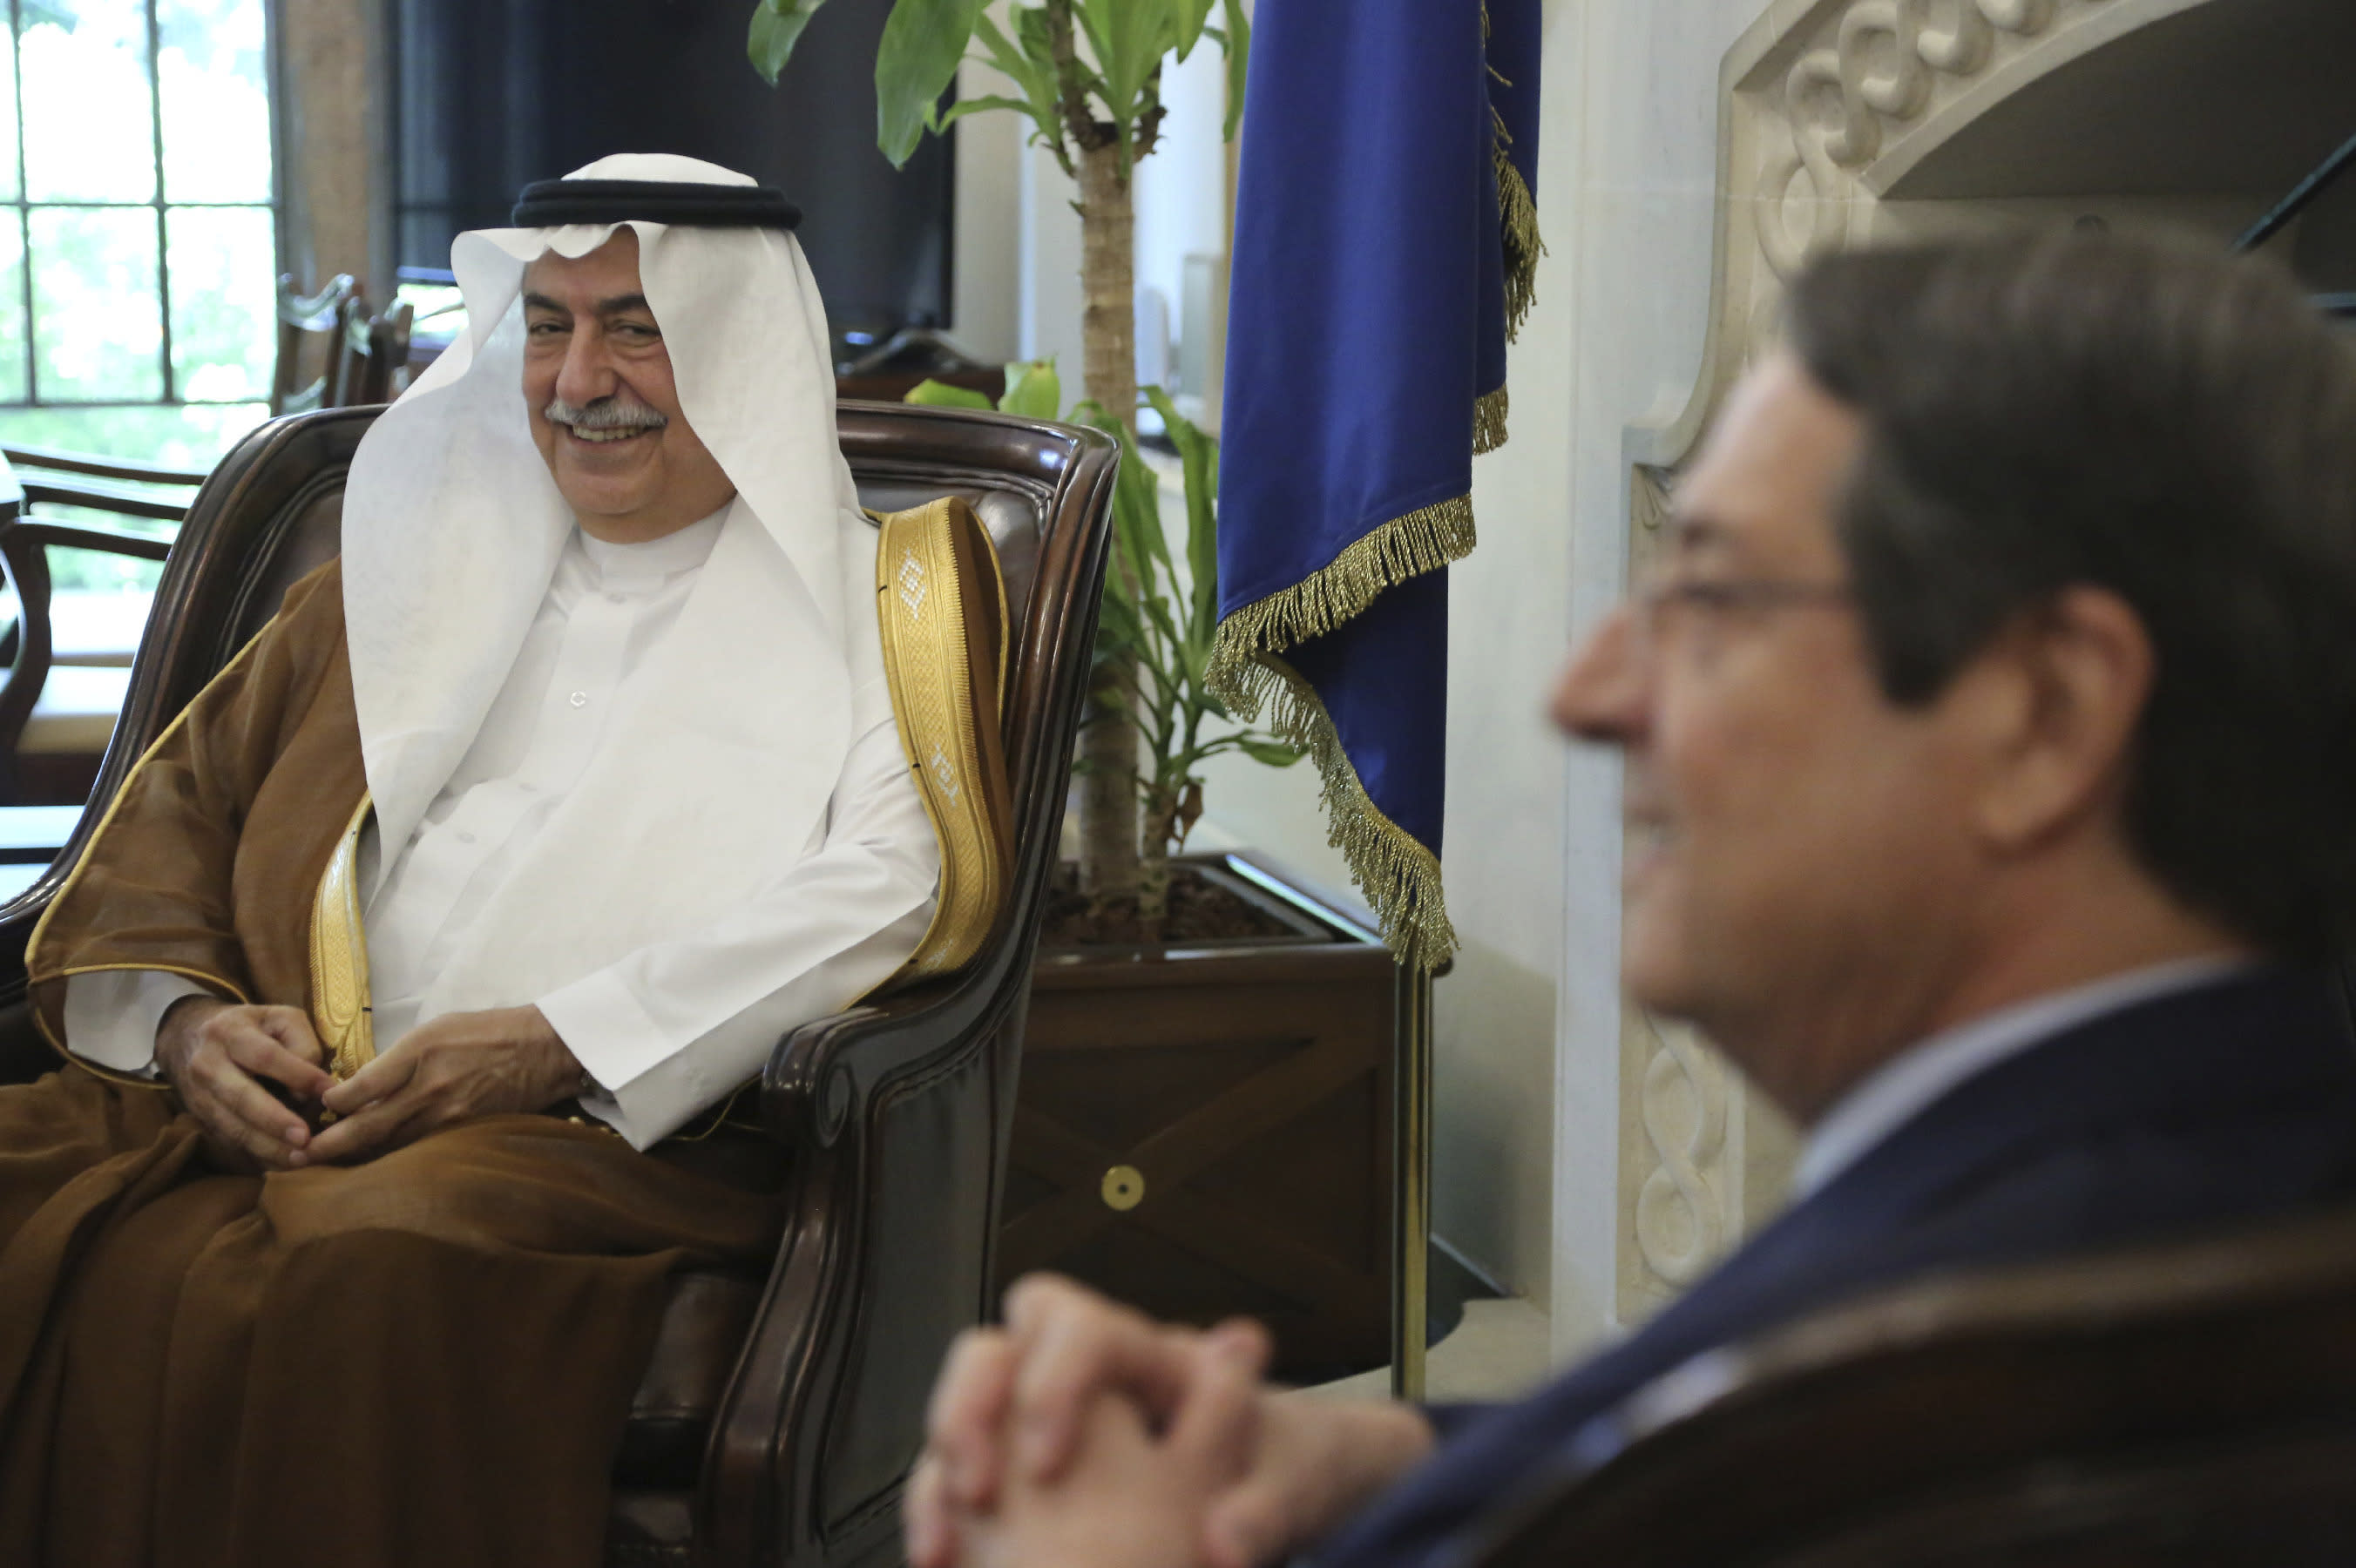 Cyprus' president Nicos Anastasiades, right, and Saudi Foreign Minister Ibrahim Bin Abdulaziz Al-Assaf talk during their meeting at the presidential palace in capital Nicosia, Cyprus, Wednesday Sept. 11, 2019. (AP Photo/Petros Karadjias)